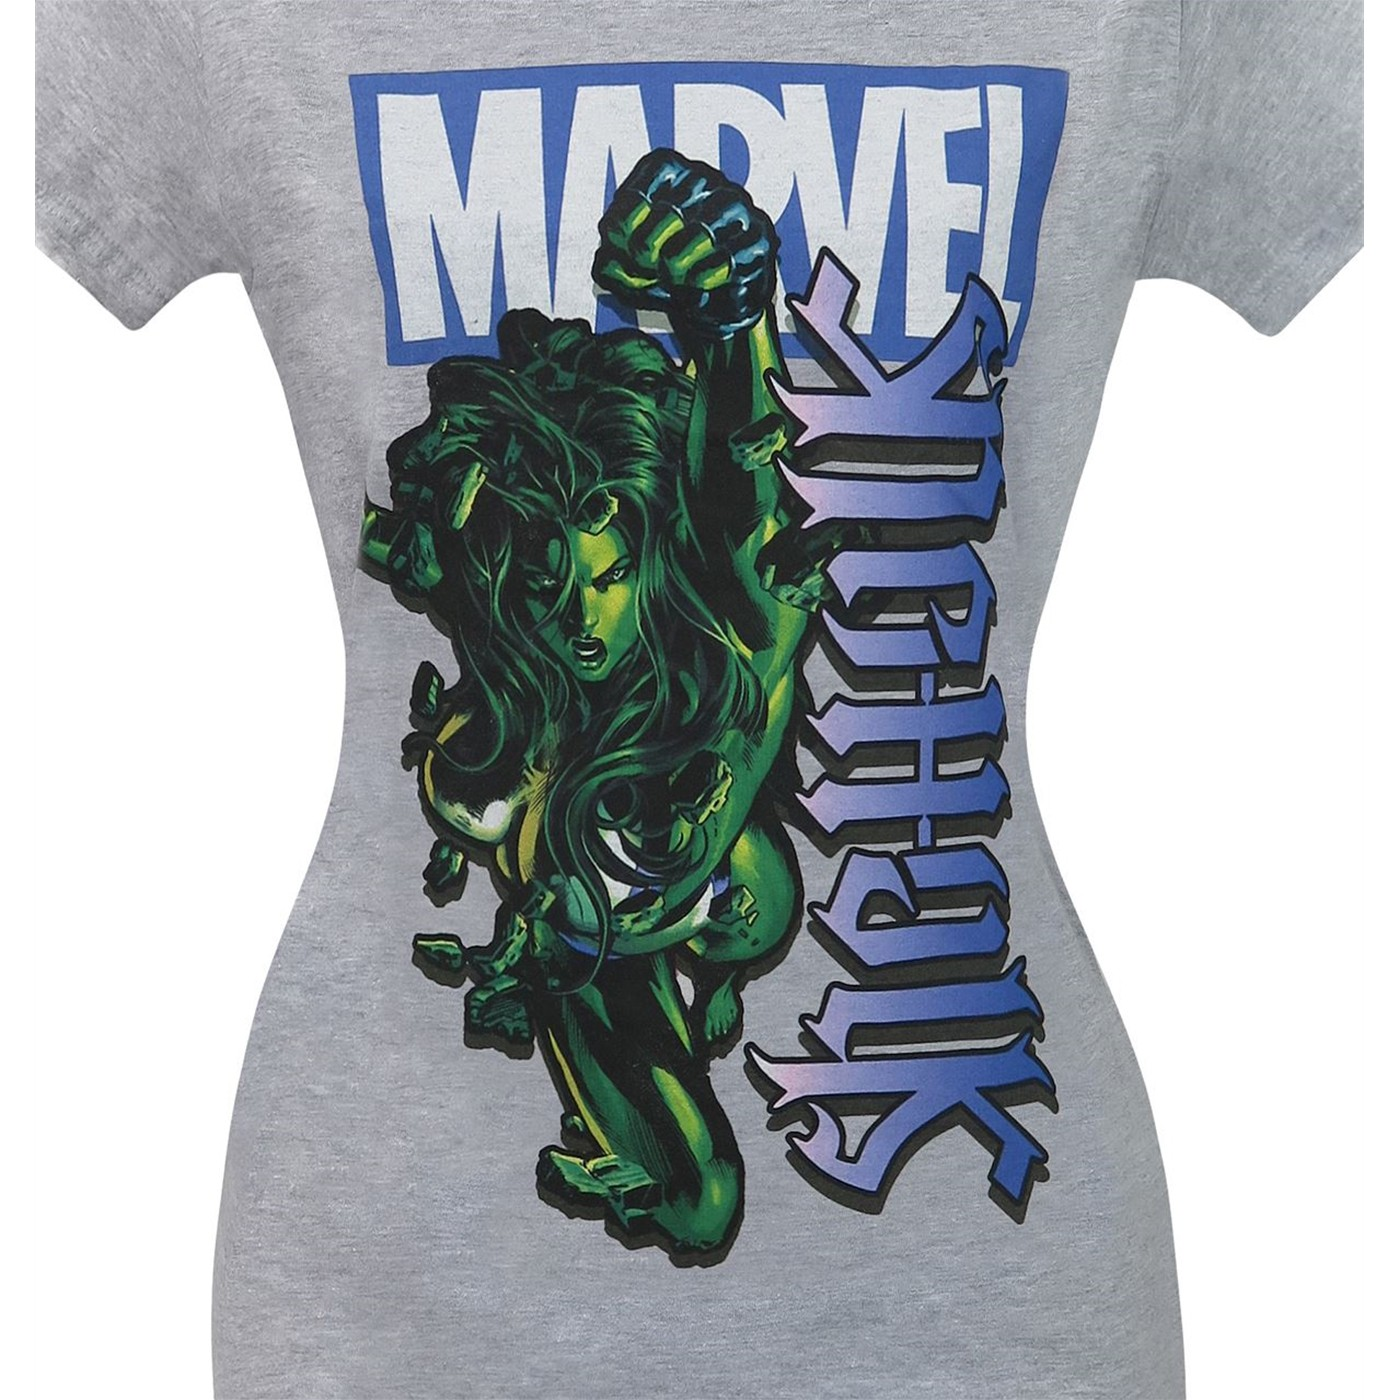 She-Hulk Smash Ambigram Women's T-Shirt